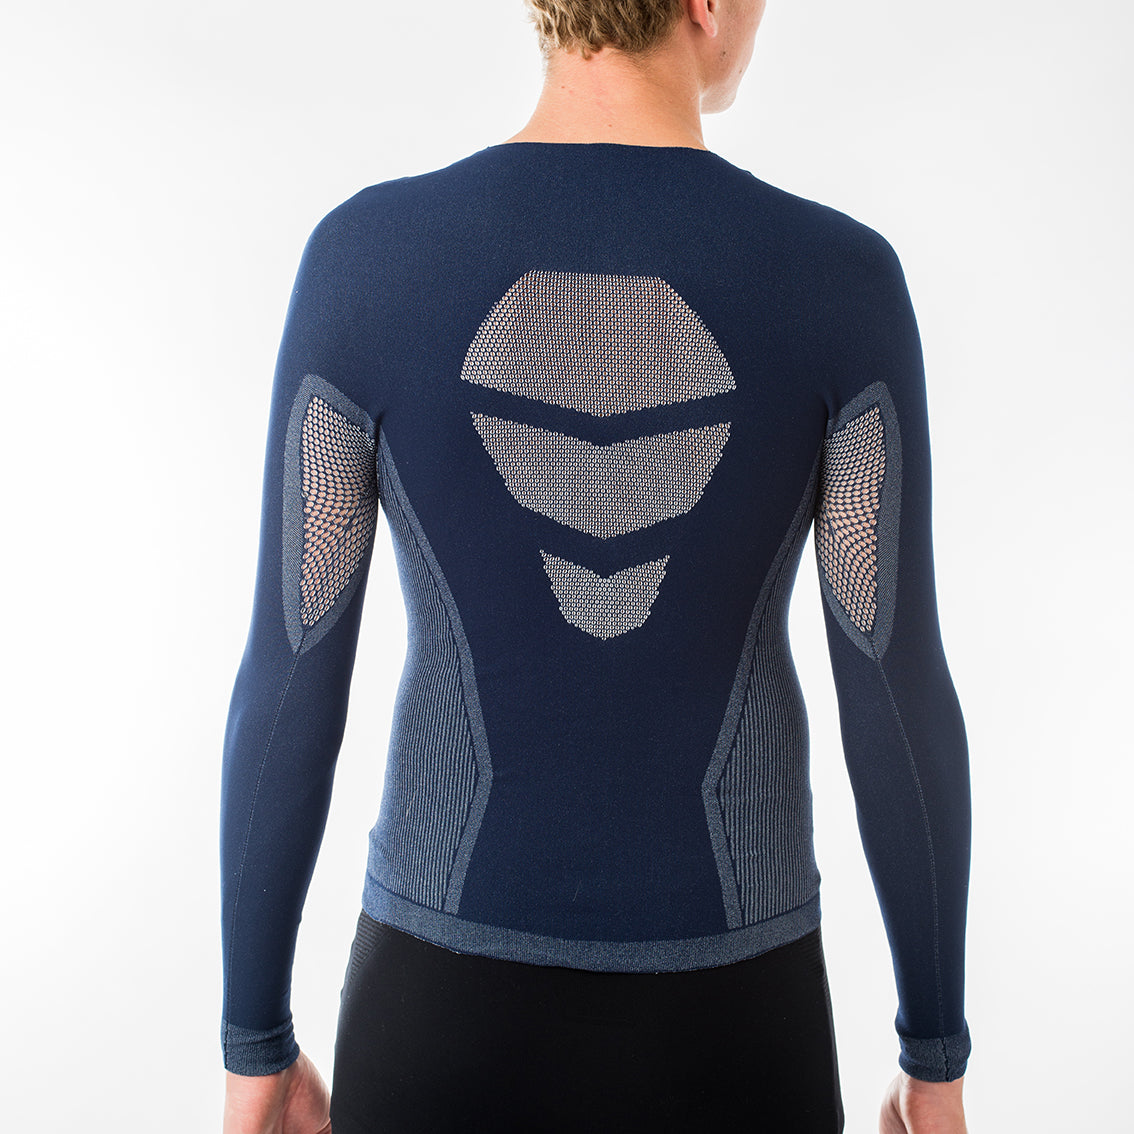 Men's DRYNAMO Winter Cycle Long Sleeve Base Layer